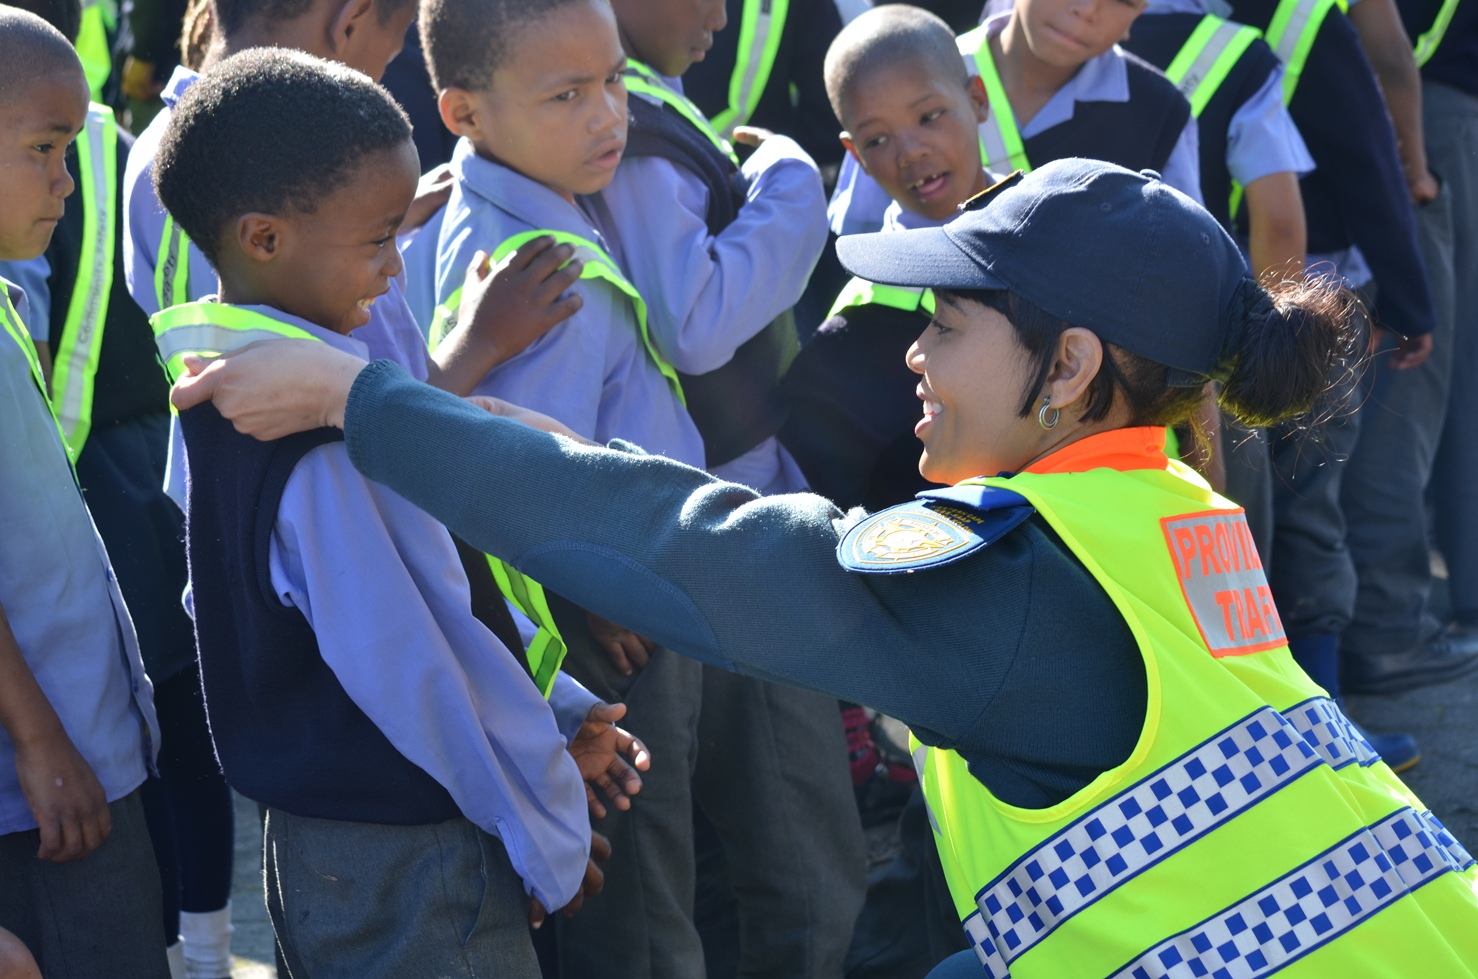 Provincial Inspector Antoinette Fennie hands out reflective sashes.